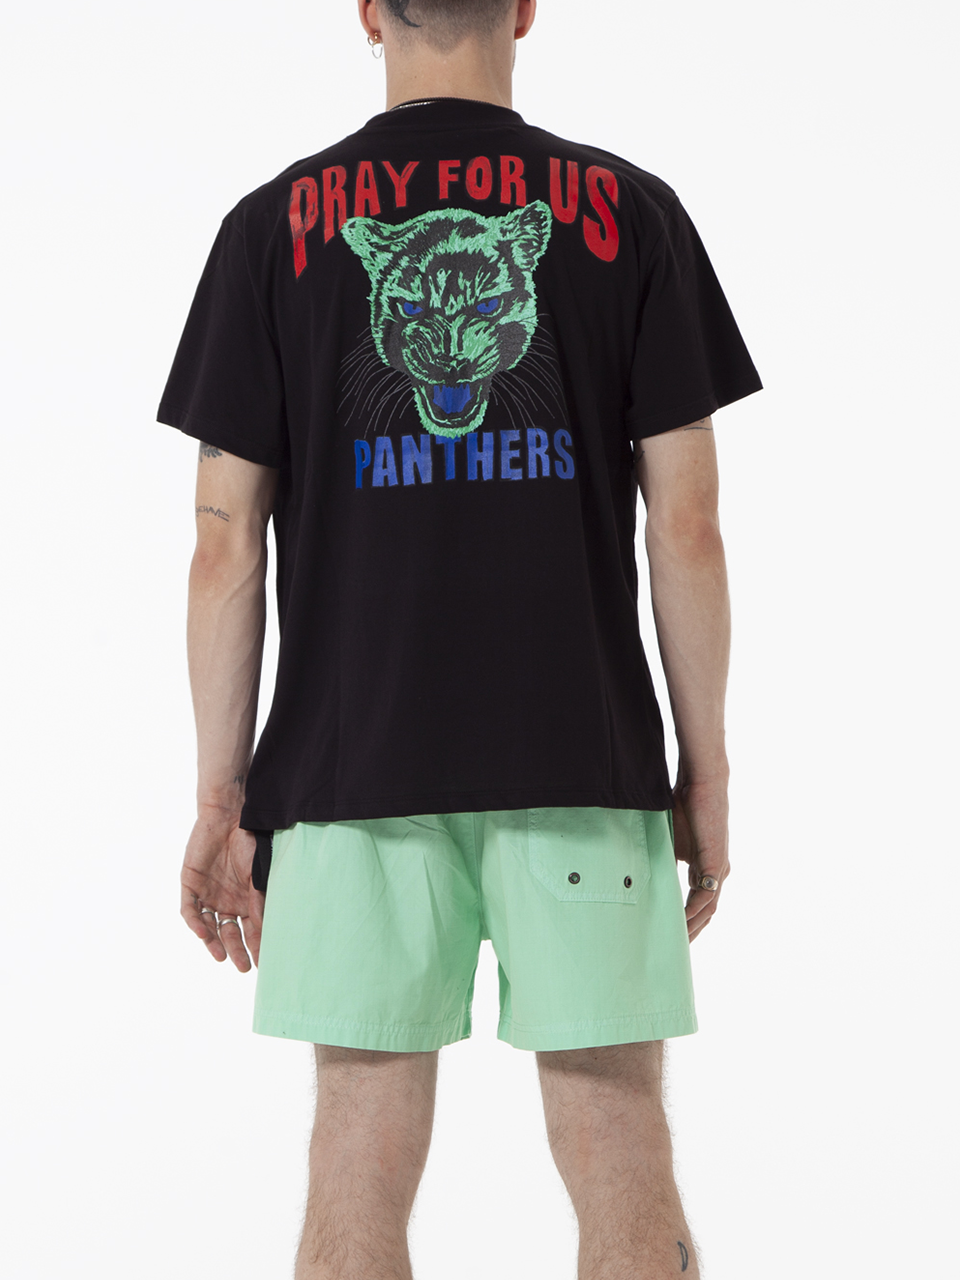 PRAYFORUS ™ - PANTHER T-Shirt - ss20